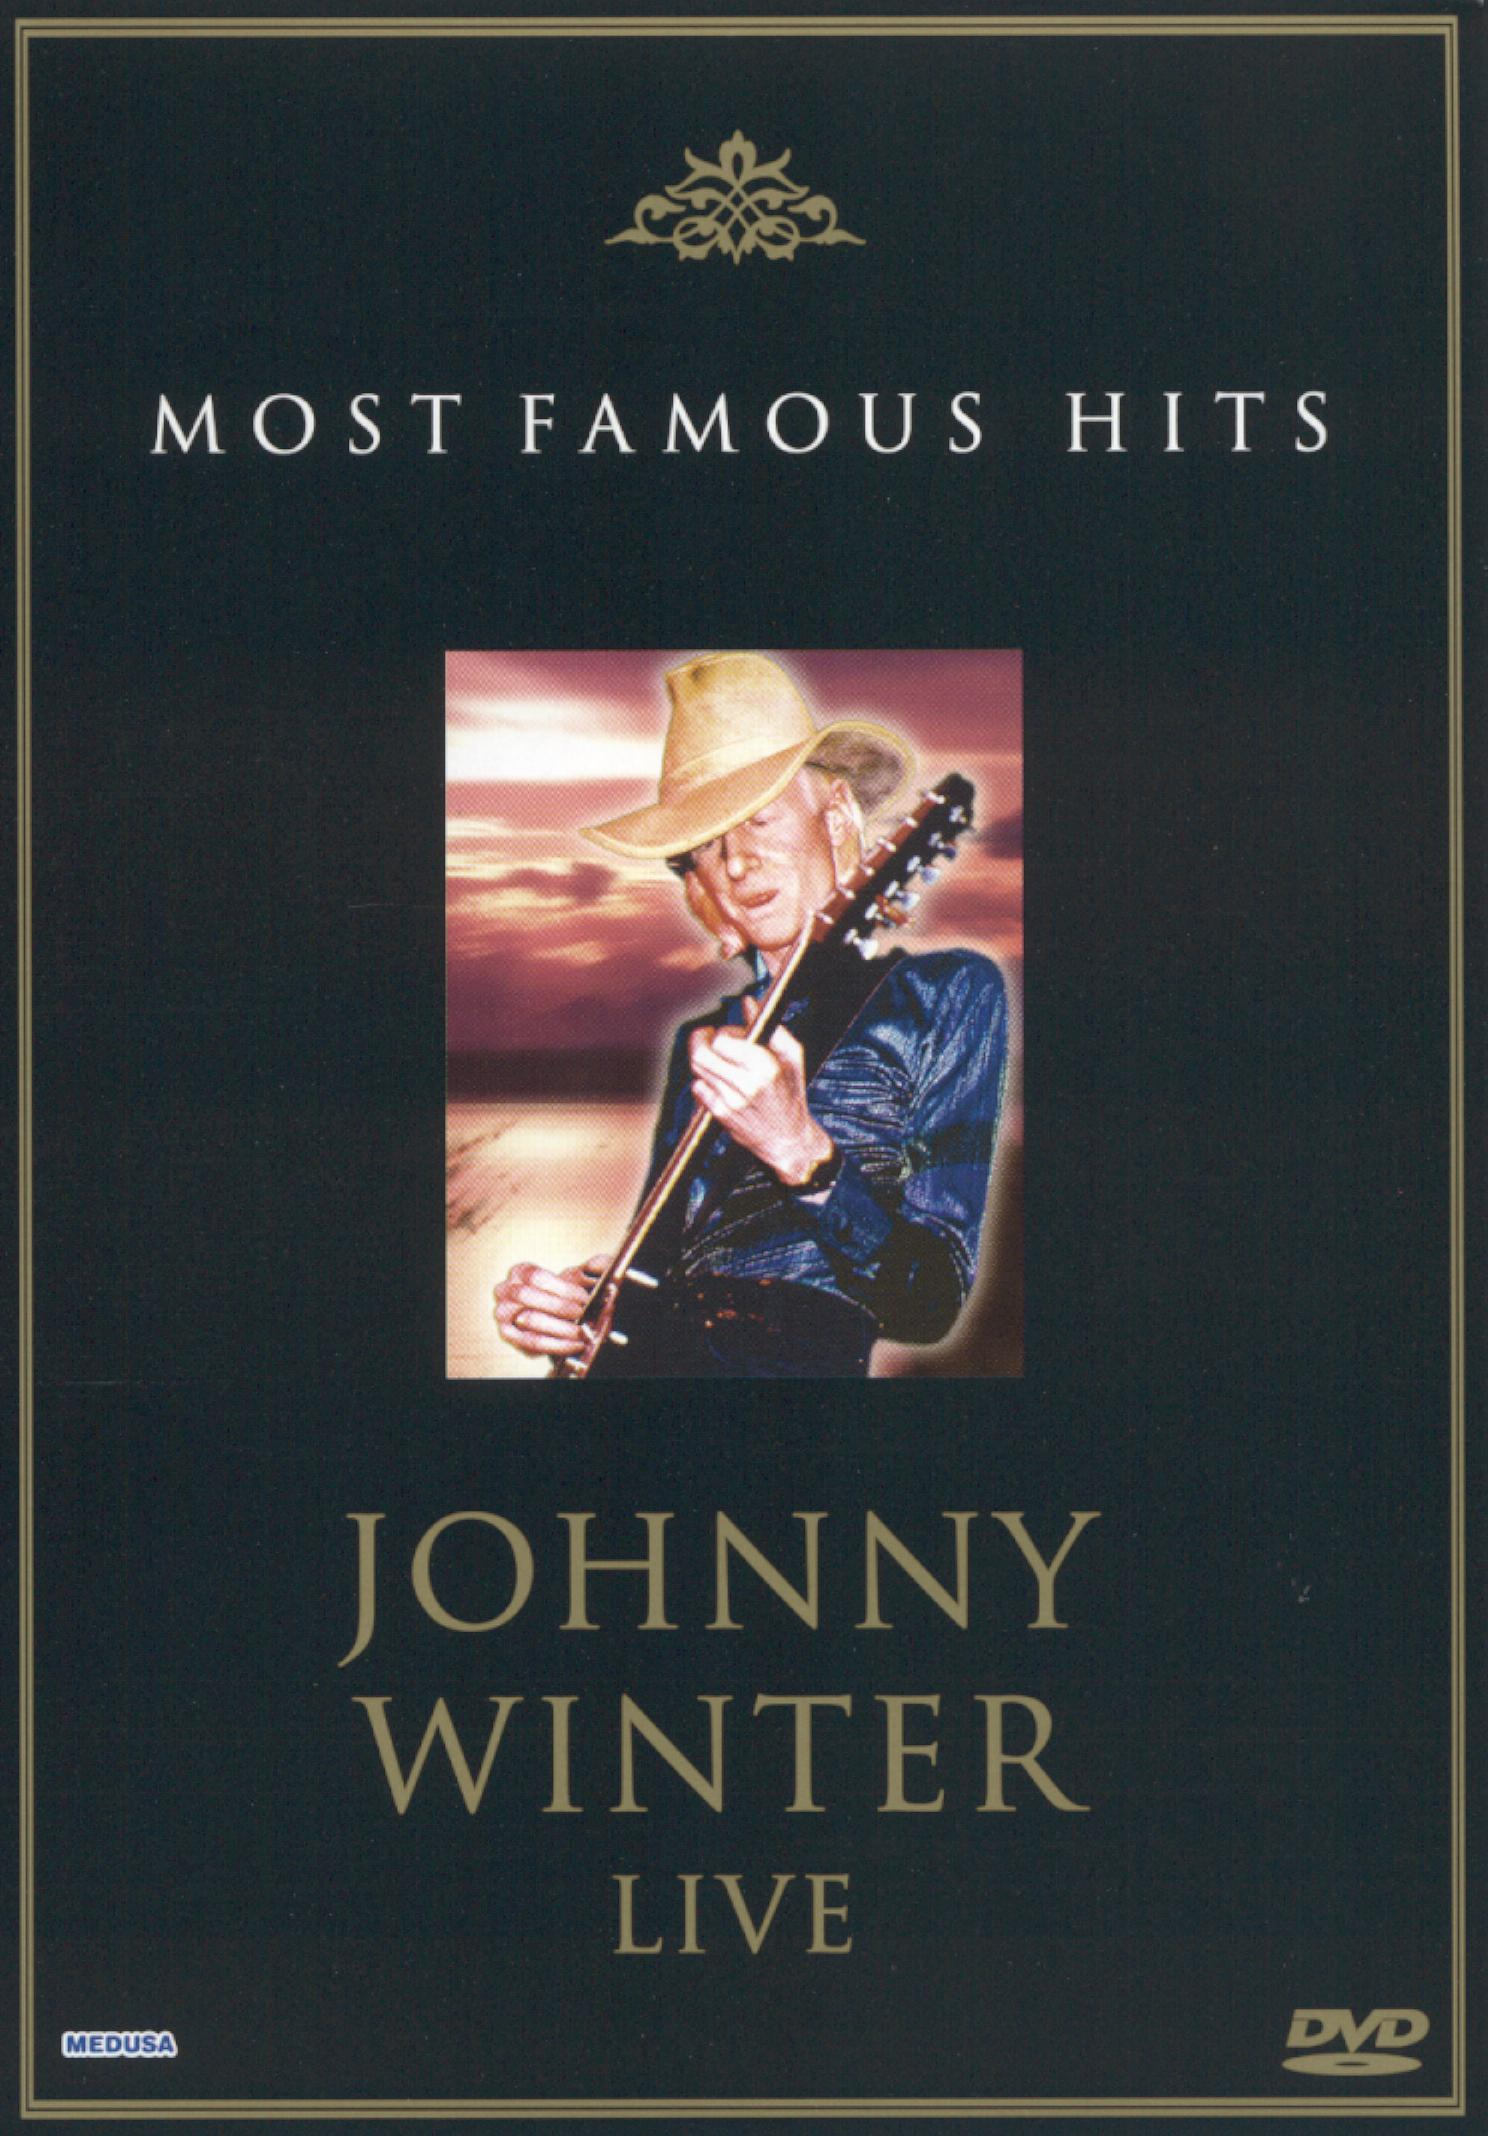 Most Famous Hits: Johnny Winter  - Live